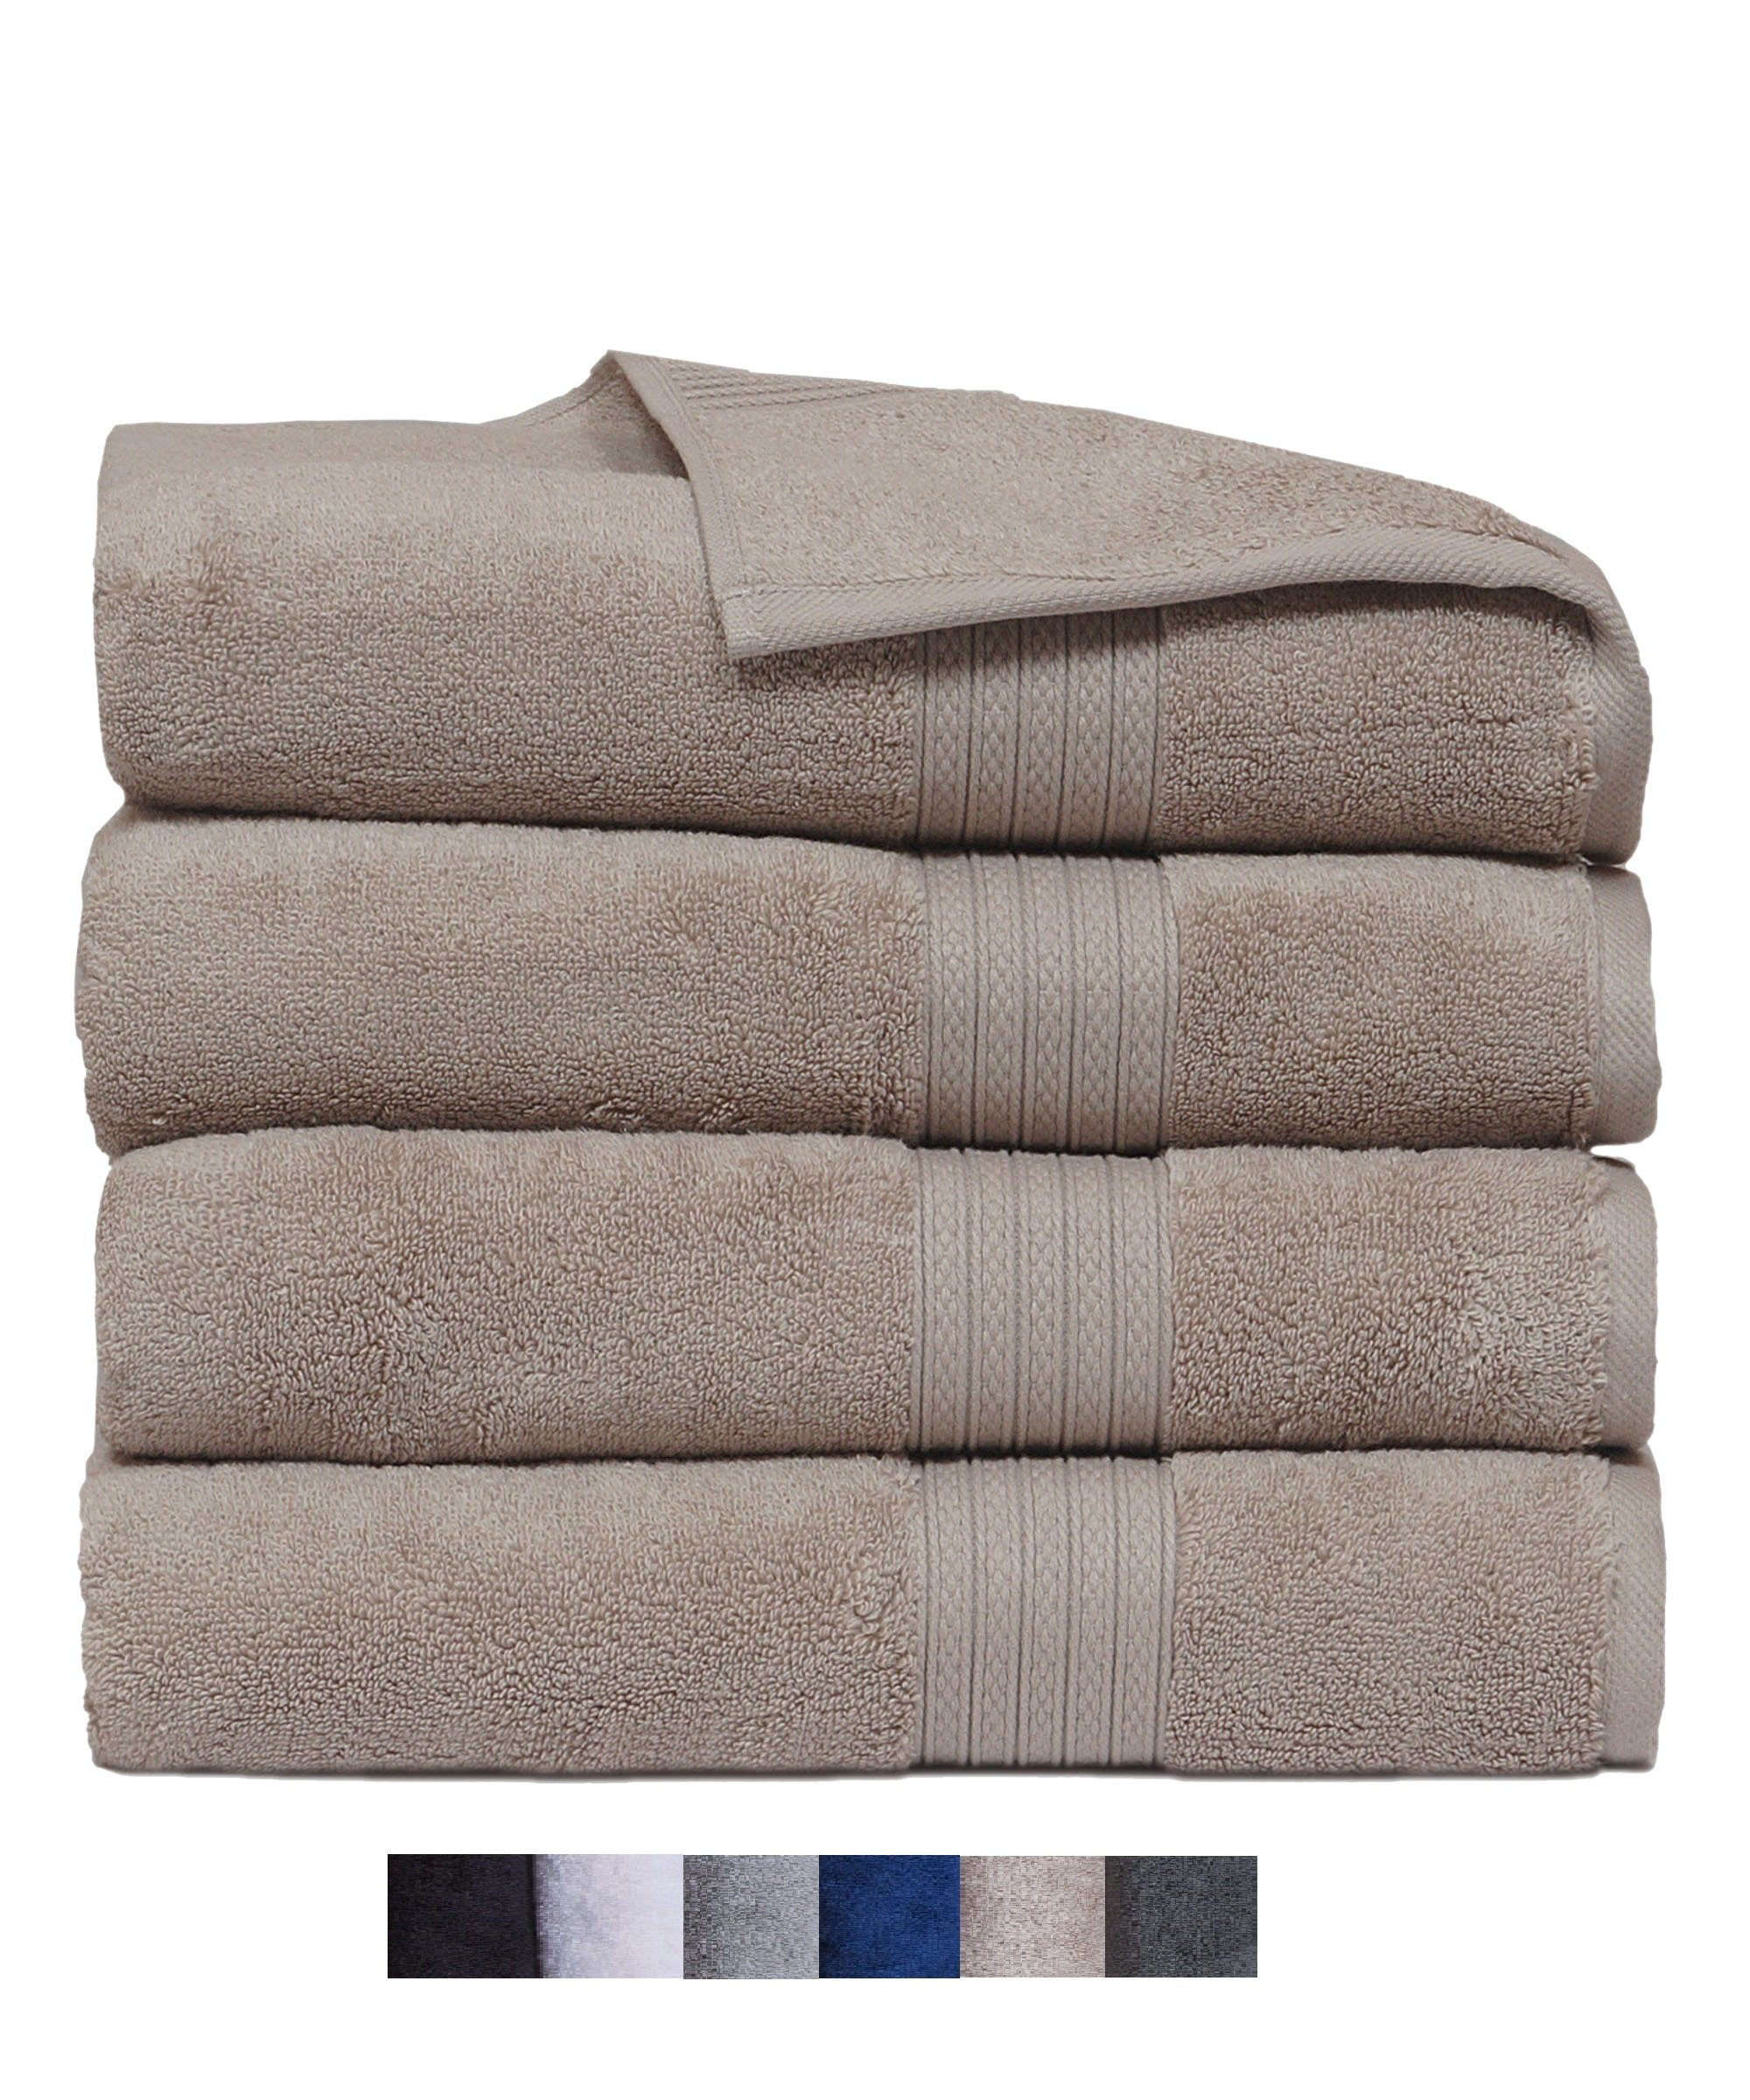 Casa Platino Quick Dry Super Zero Twist 4 Pack Large Bath Towel Set 28x54 7 Star Hotel Luxury Collection - 100% Pure Super Zero Twist Cotton (linen) by Casa Platino